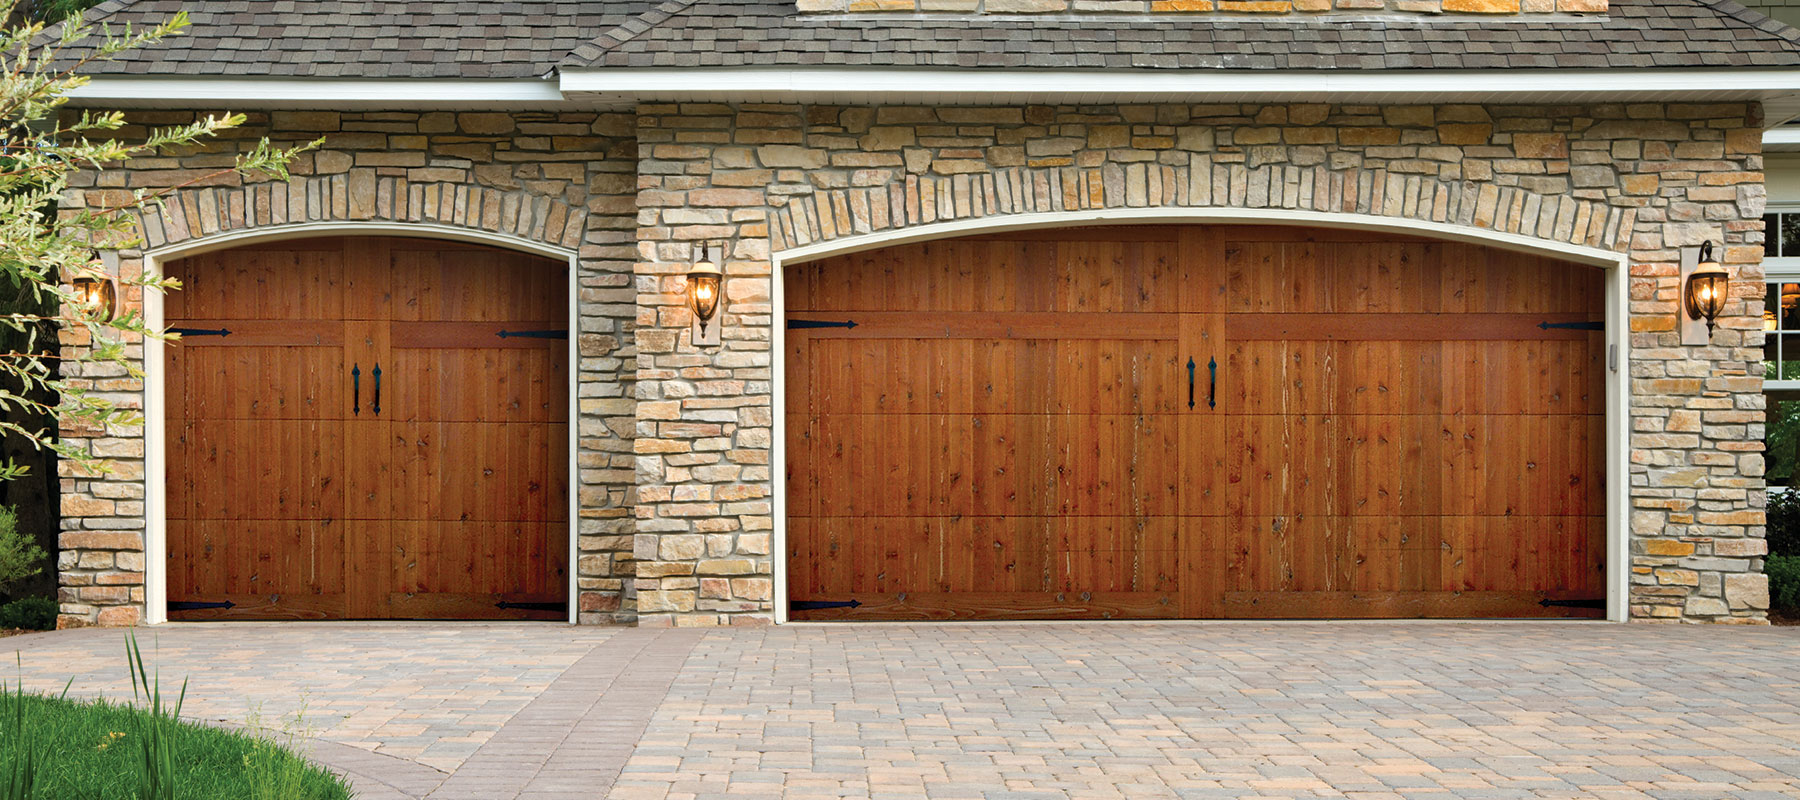 Woodland Creek - Wood Overlay Garage Door